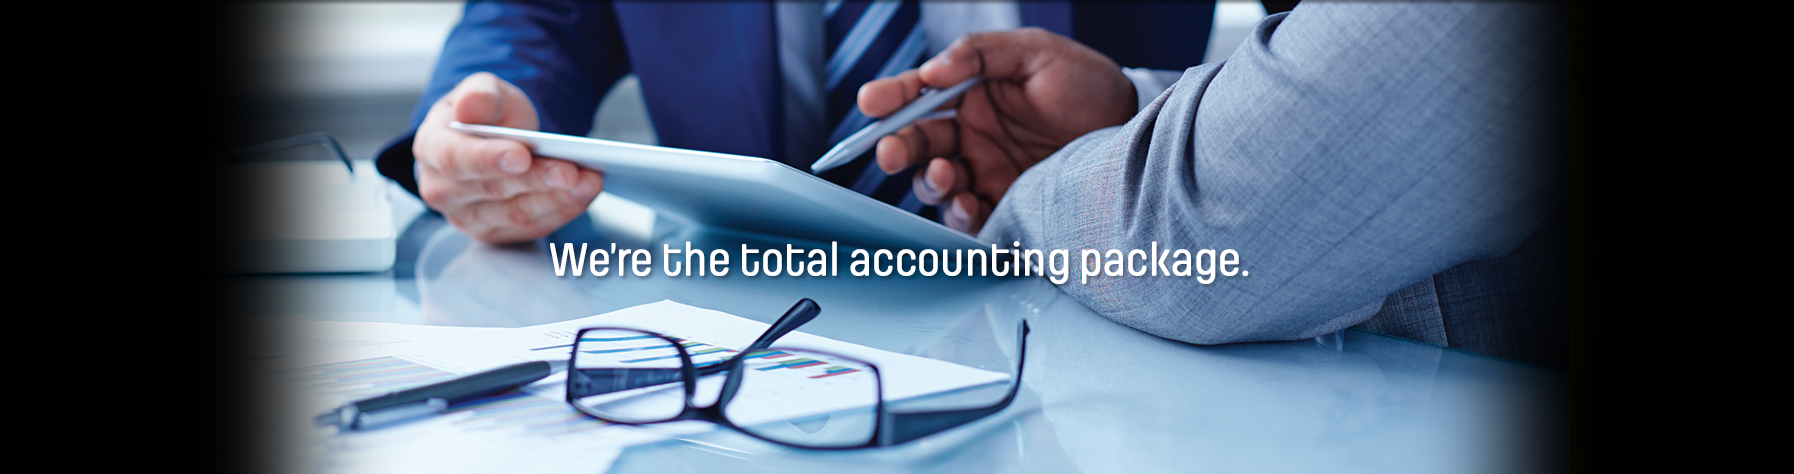 accountants greater toronto area